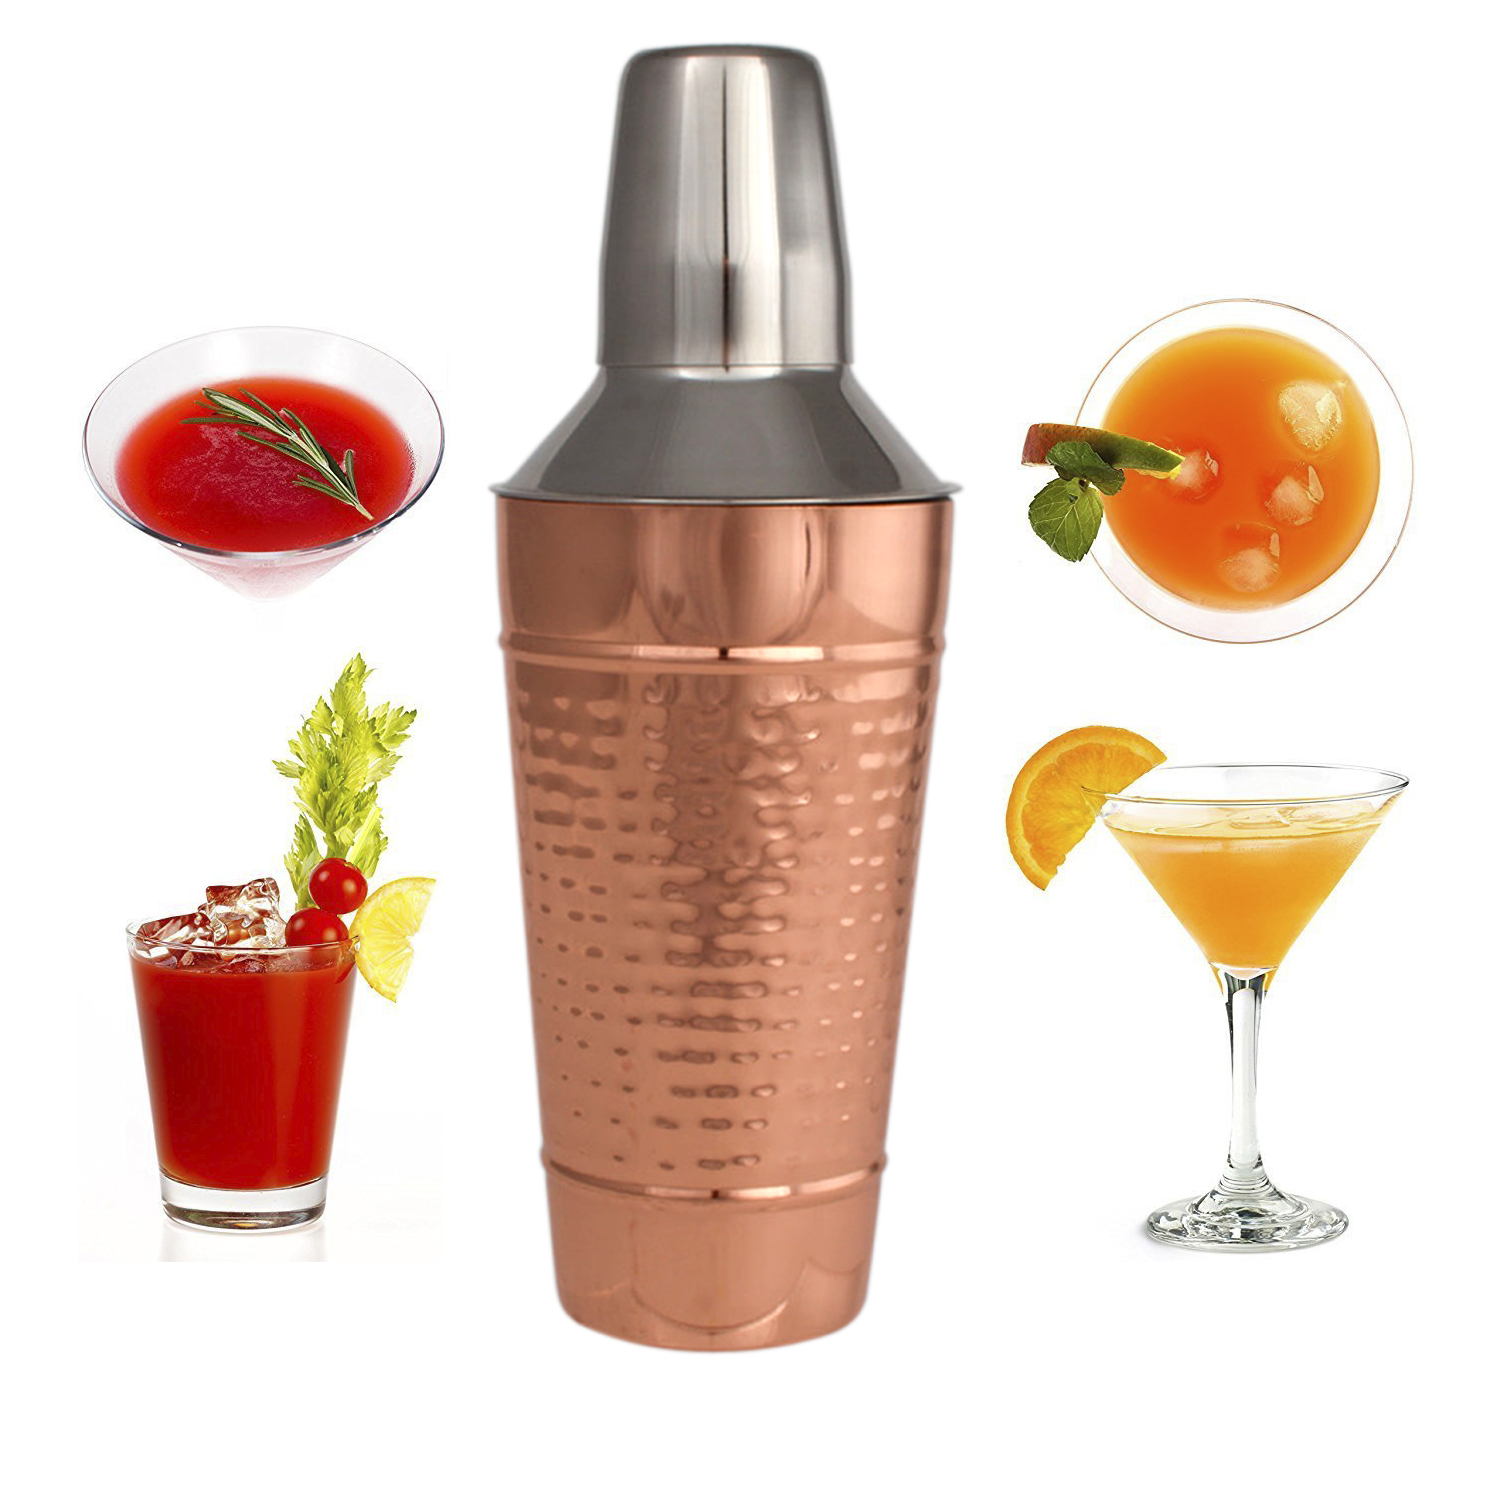 25 Oz Copper Stainless Steel Cocktail Shaker Cocktail Mixer W  Jigger Cap & Strainer by